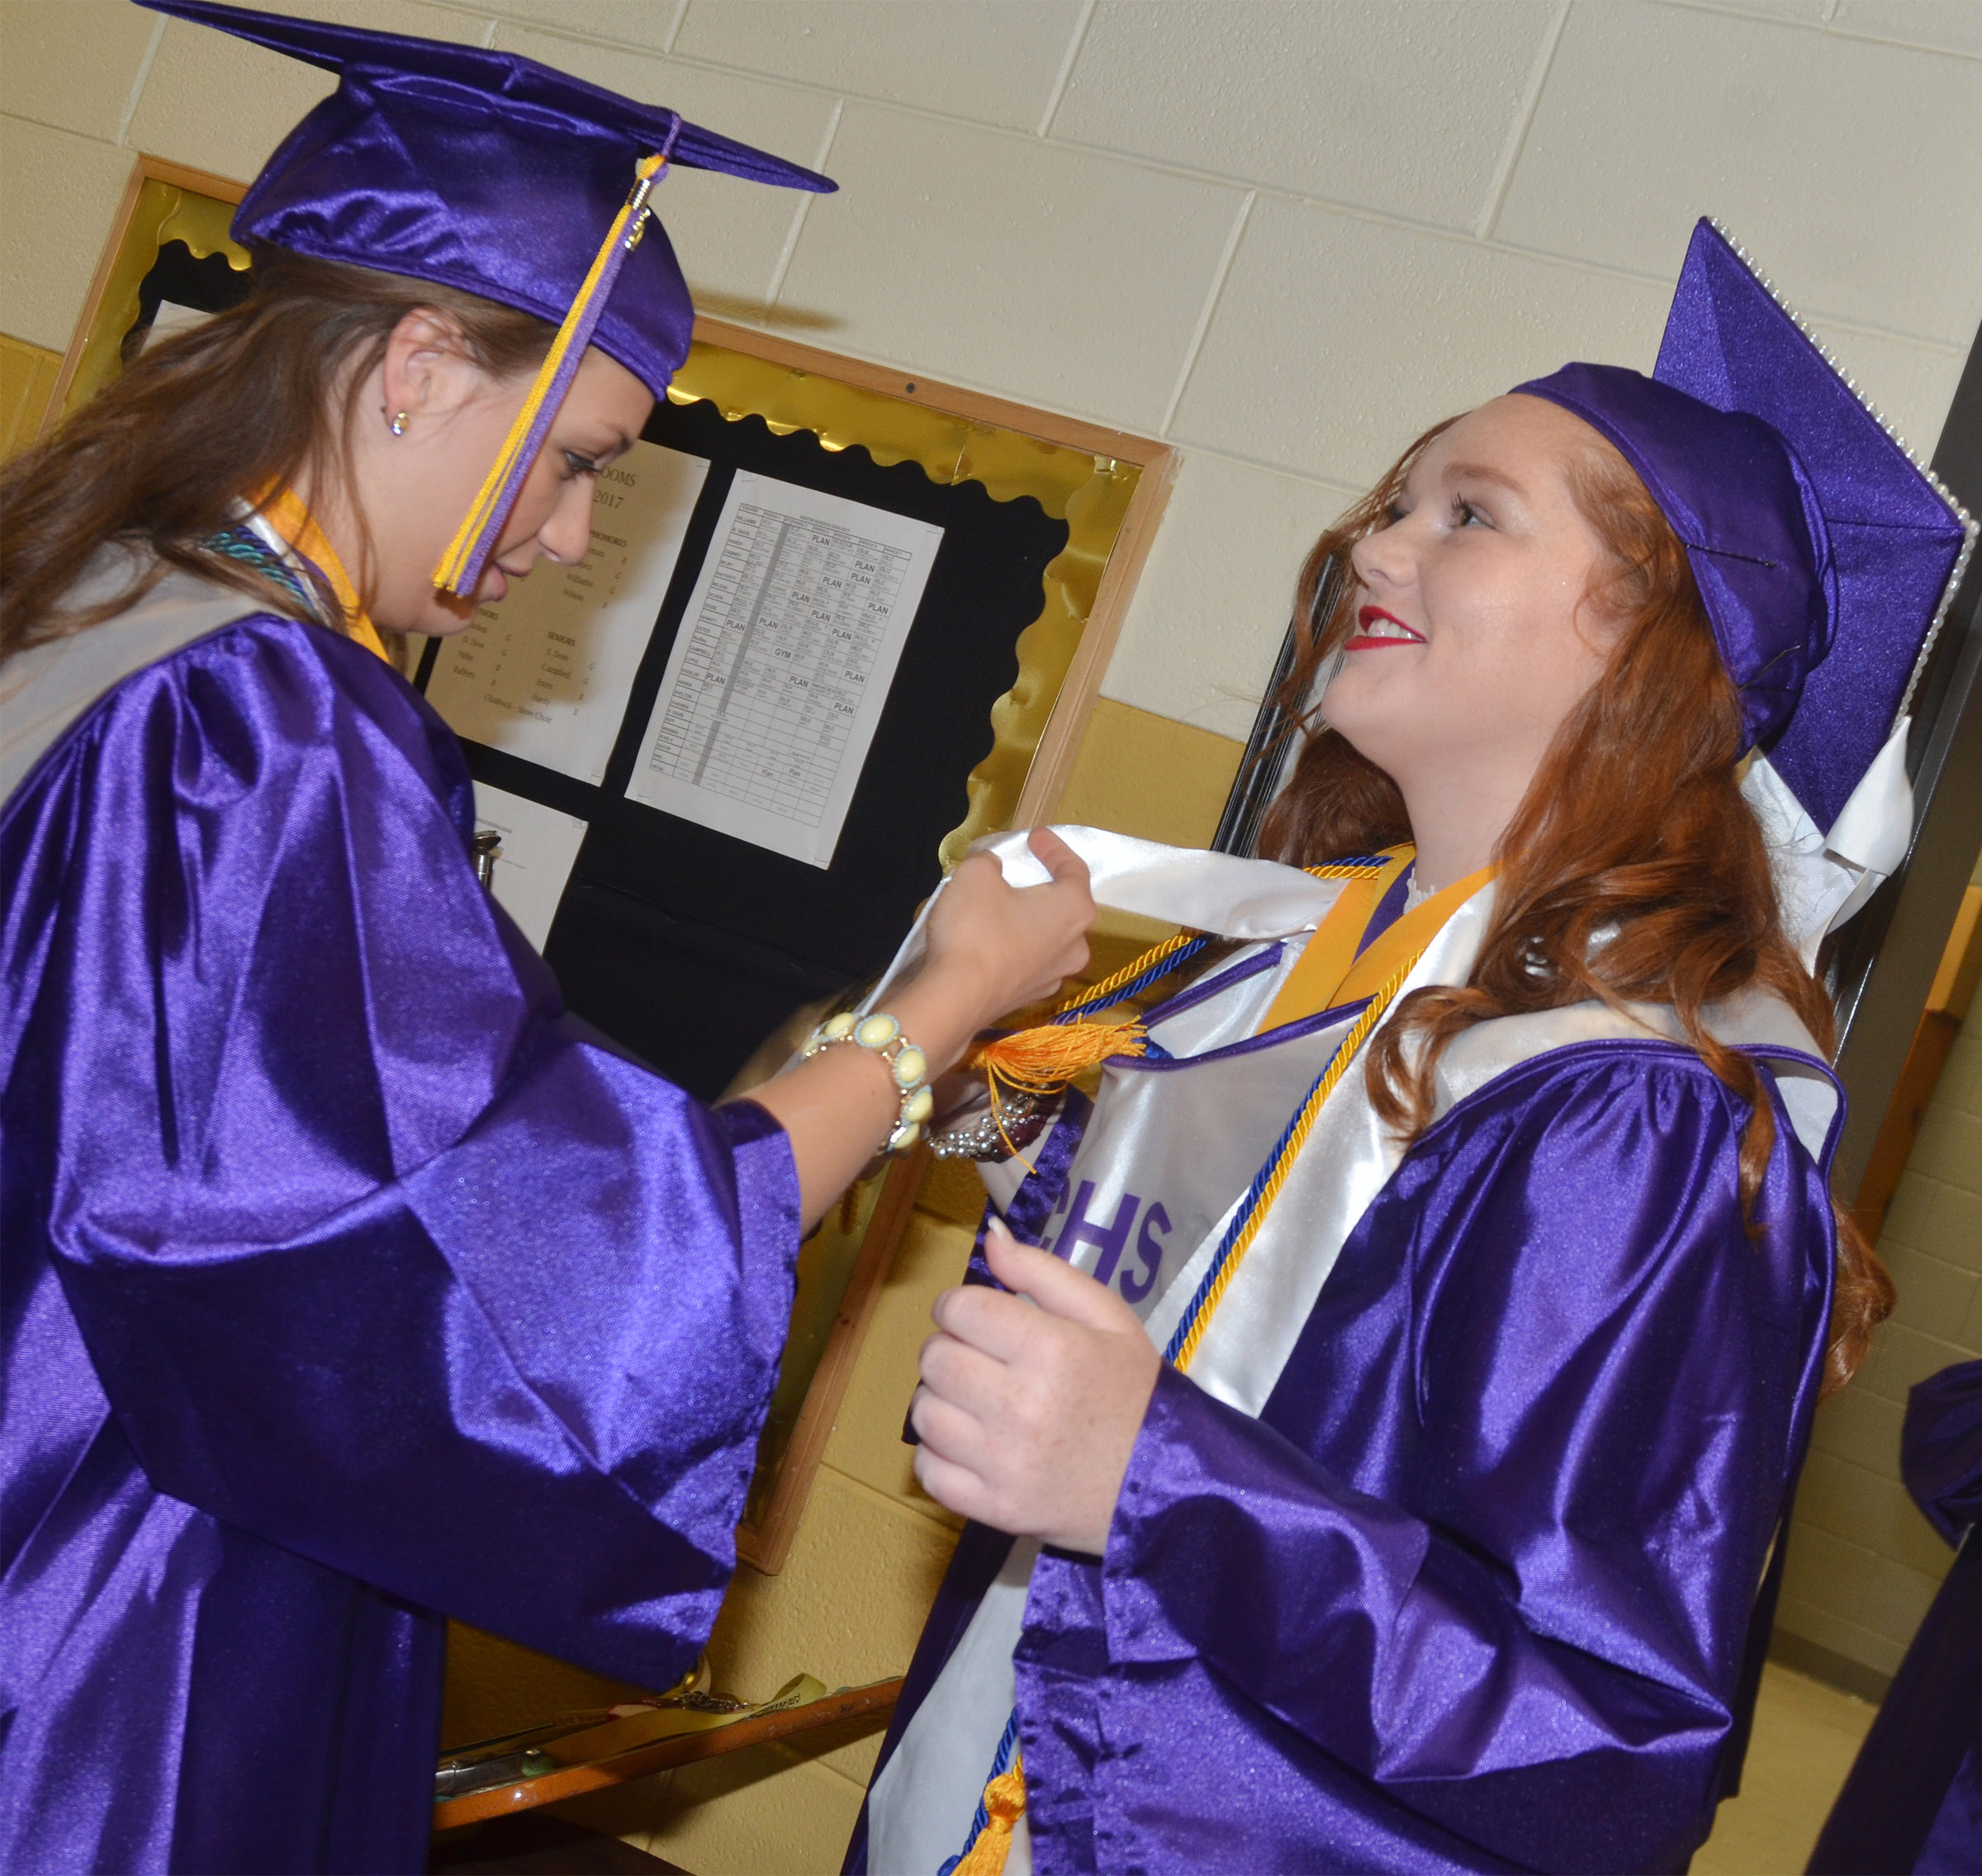 CHS senior Caylie Blair helps classmate Mallory Haley with her honor cords before graduation.